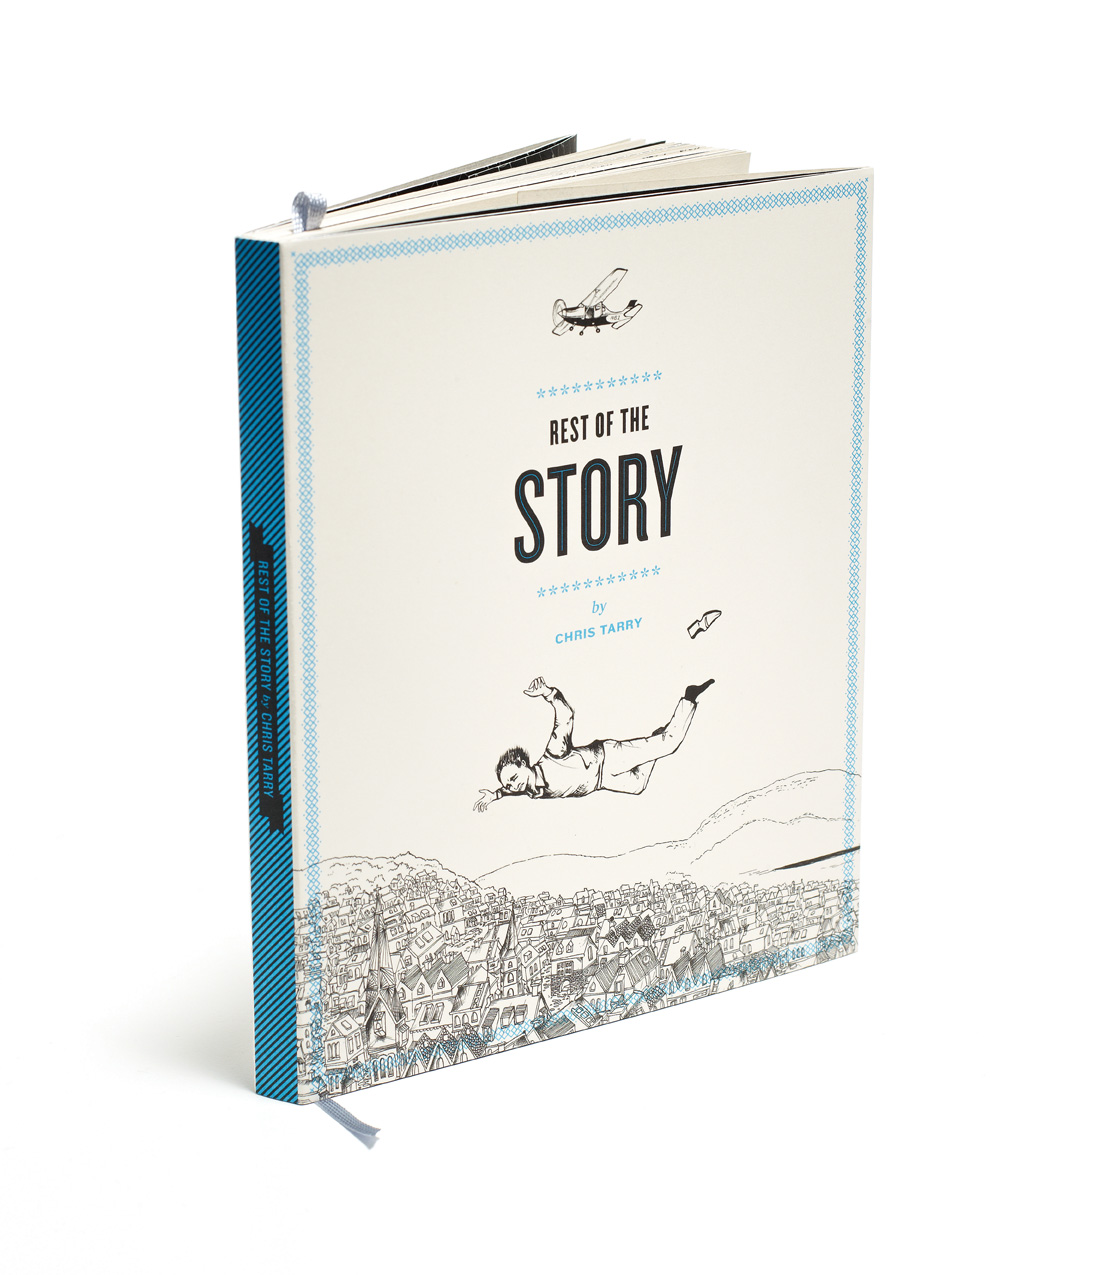 the story Spread truth creates digital tools and resources to share the beauty of the gospel story.